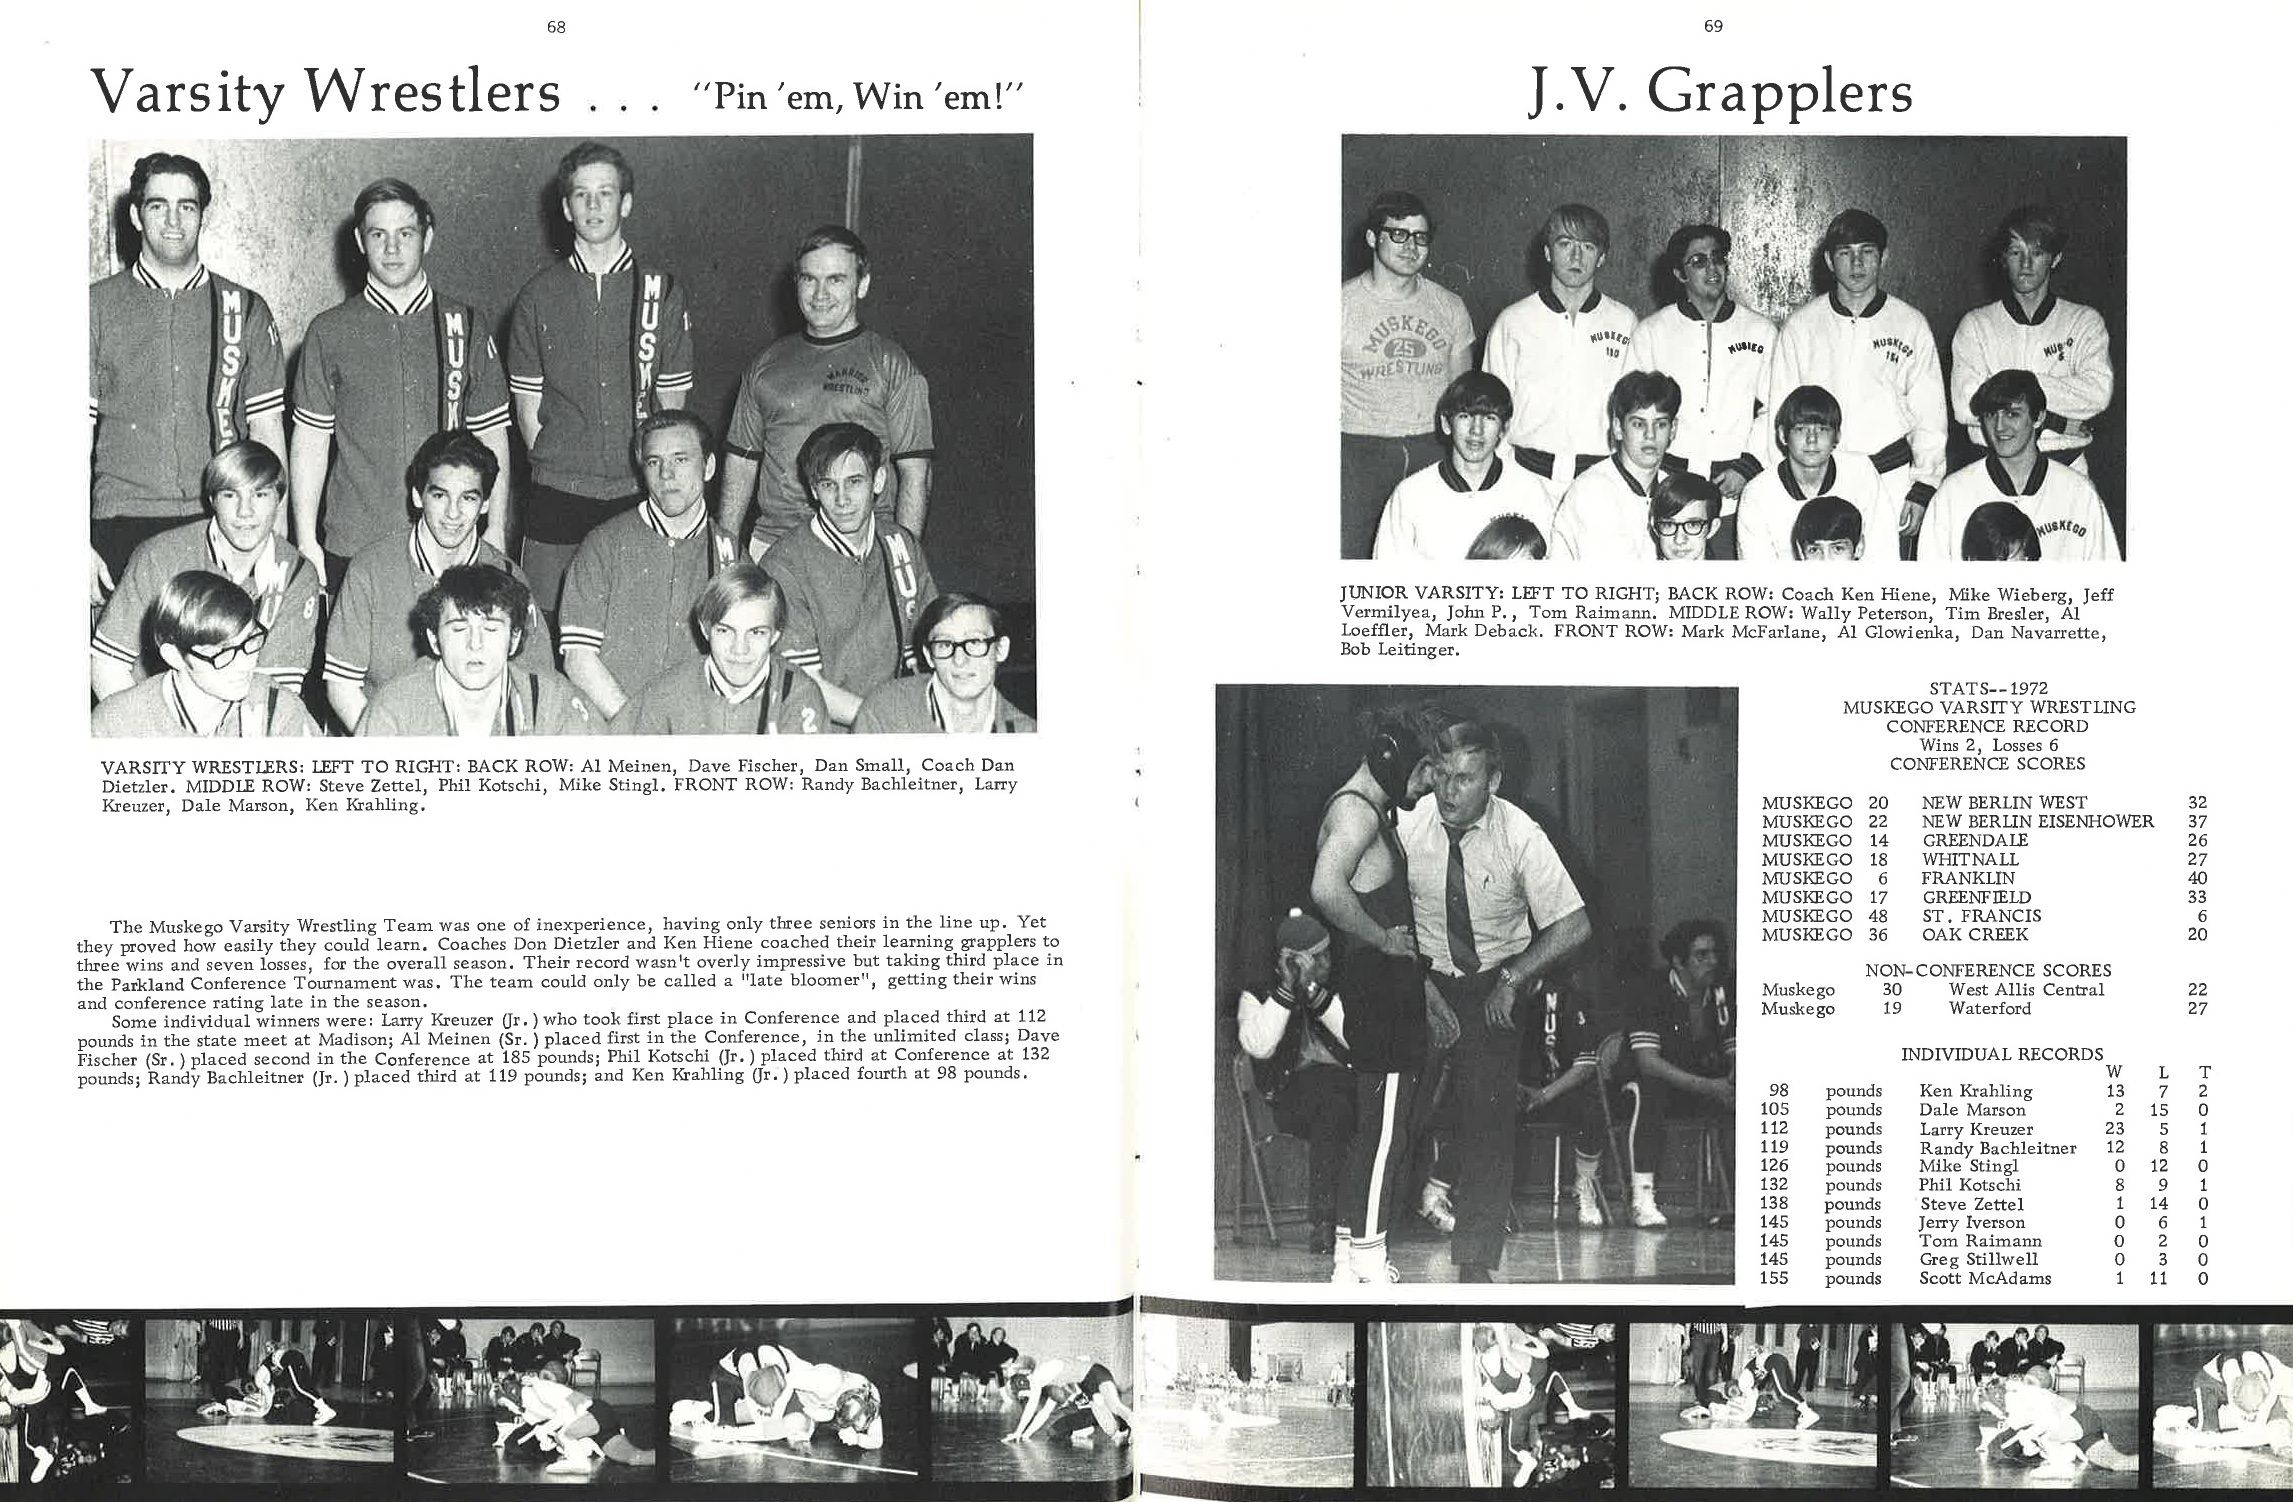 1972_Yearbook_68-69.jpg